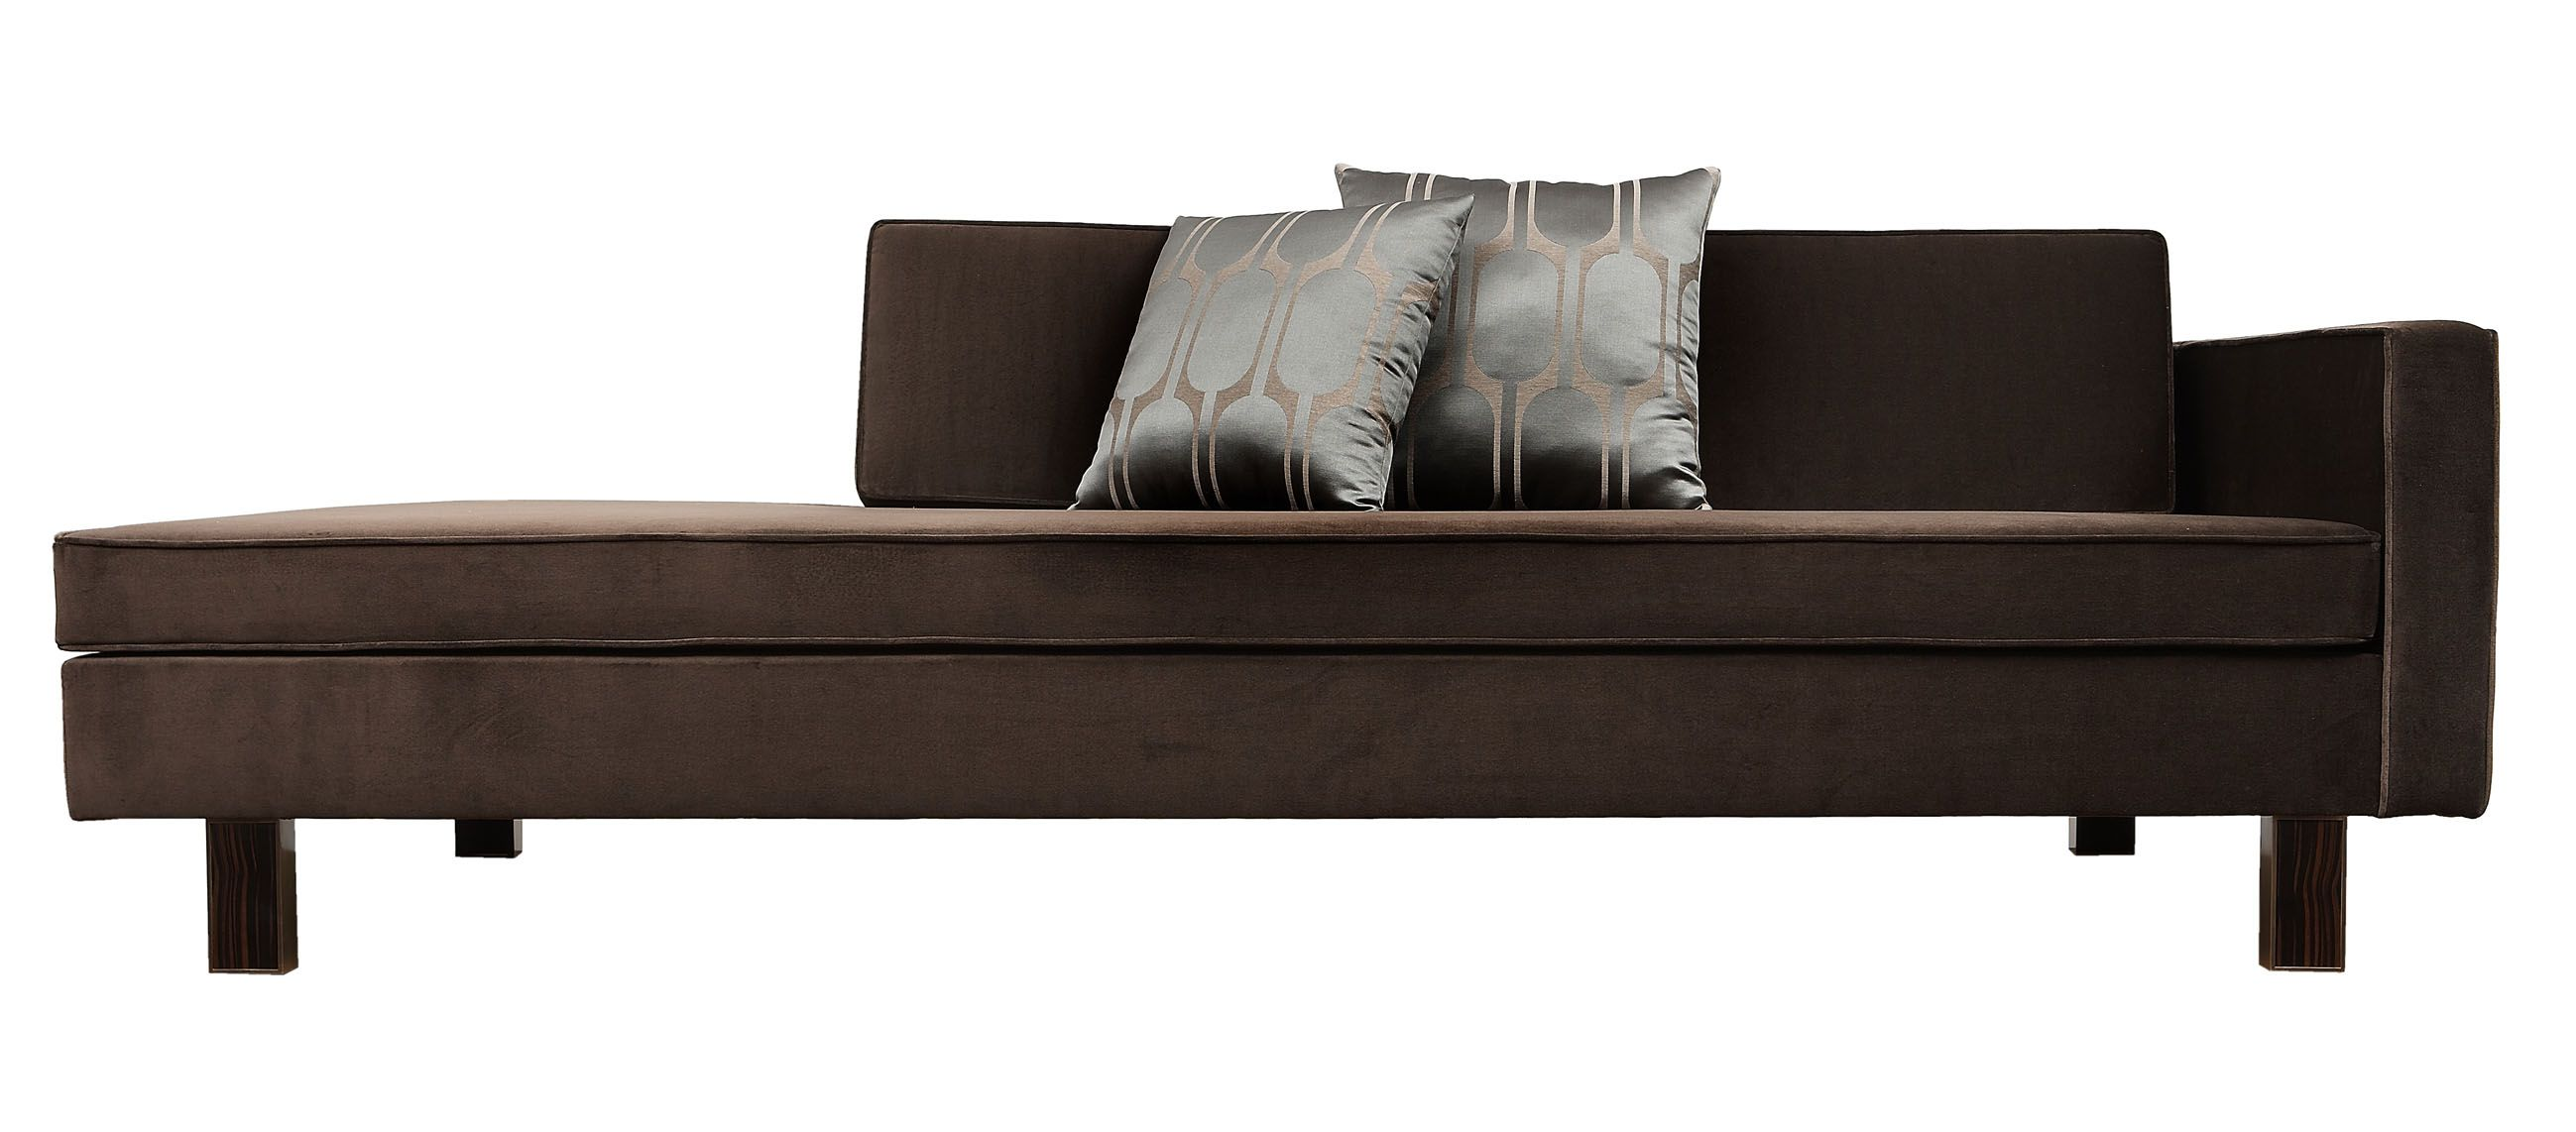 """Handmade sofa, model """"Undress"""", designed by Two Is Company."""